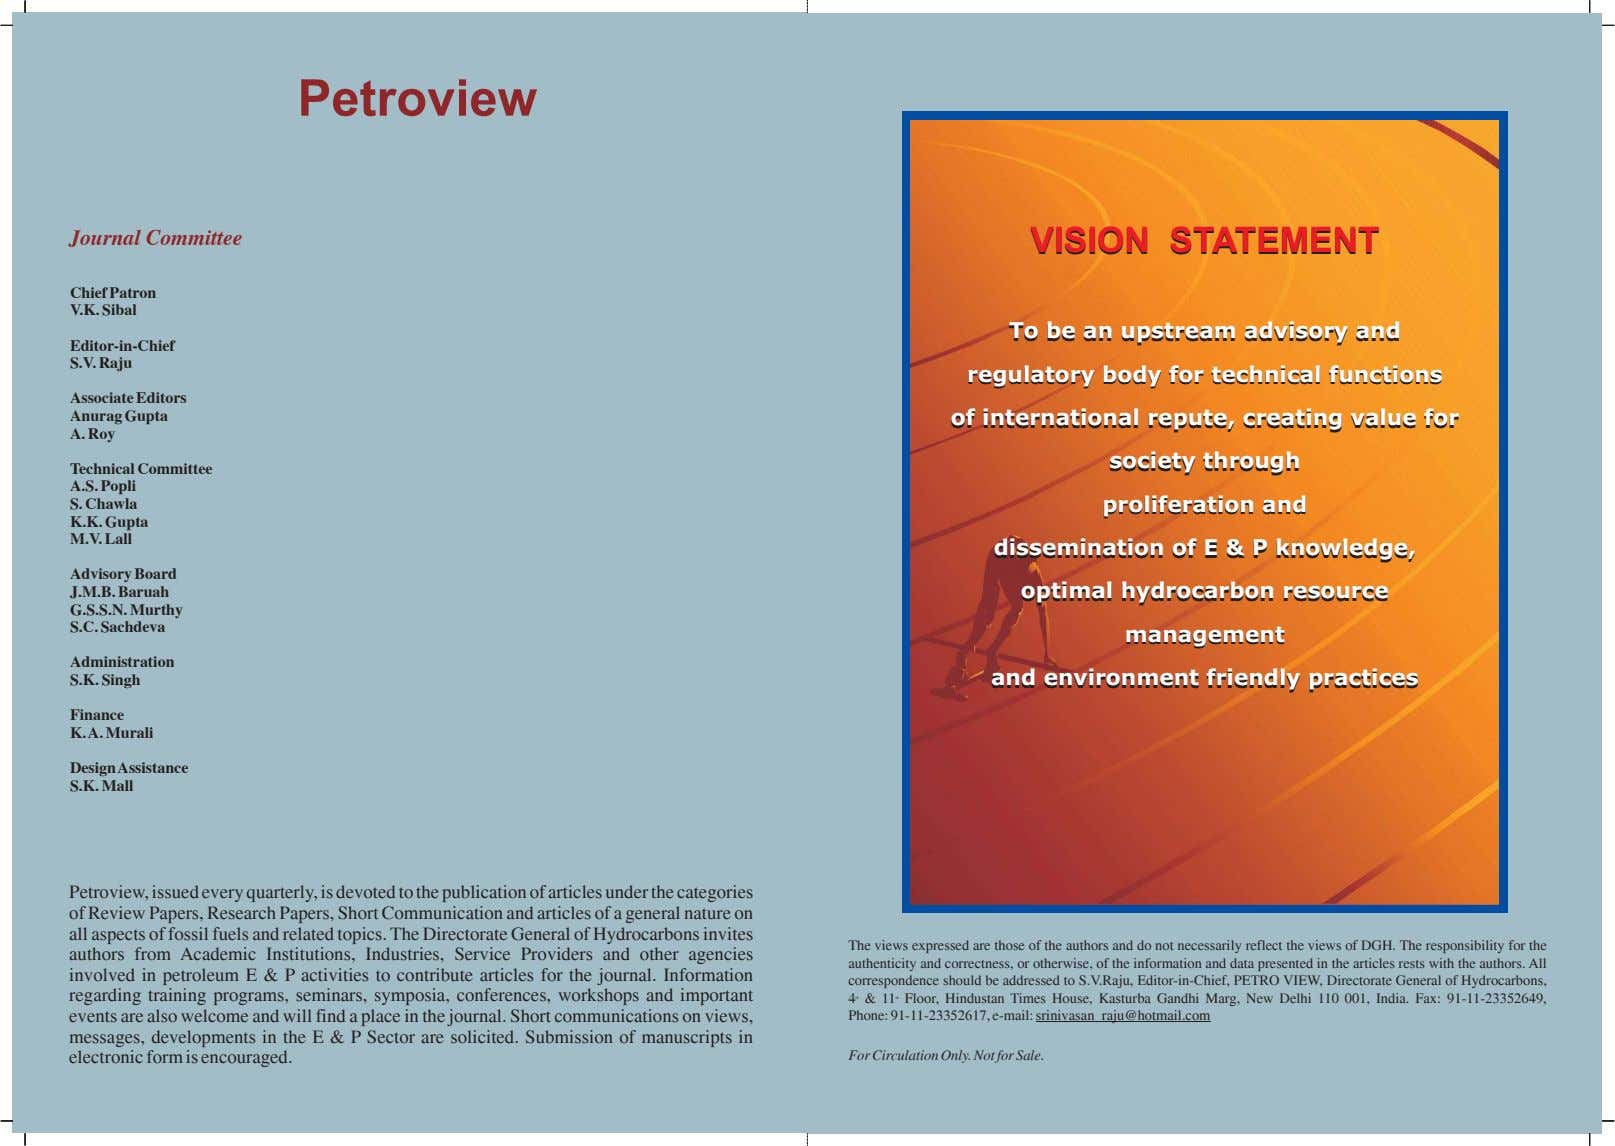 Petroview Journal Committee VISIONVISION STATEMENTSTATEMENT Chief Patron V.K. Sibal To To be be an an